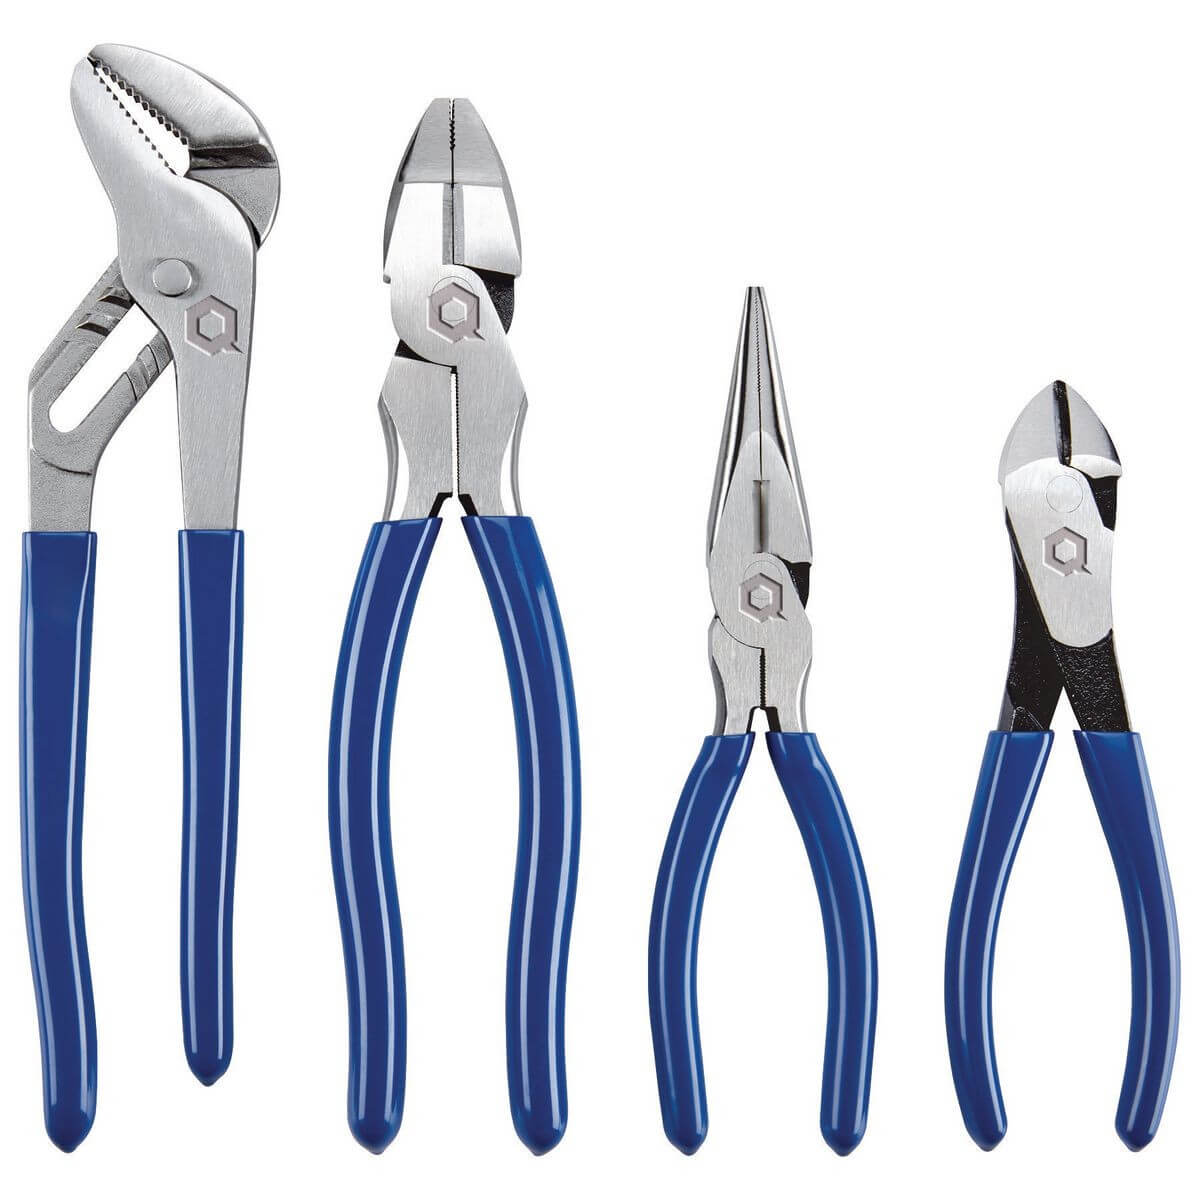 Pliers used for plumbing tools and equipment